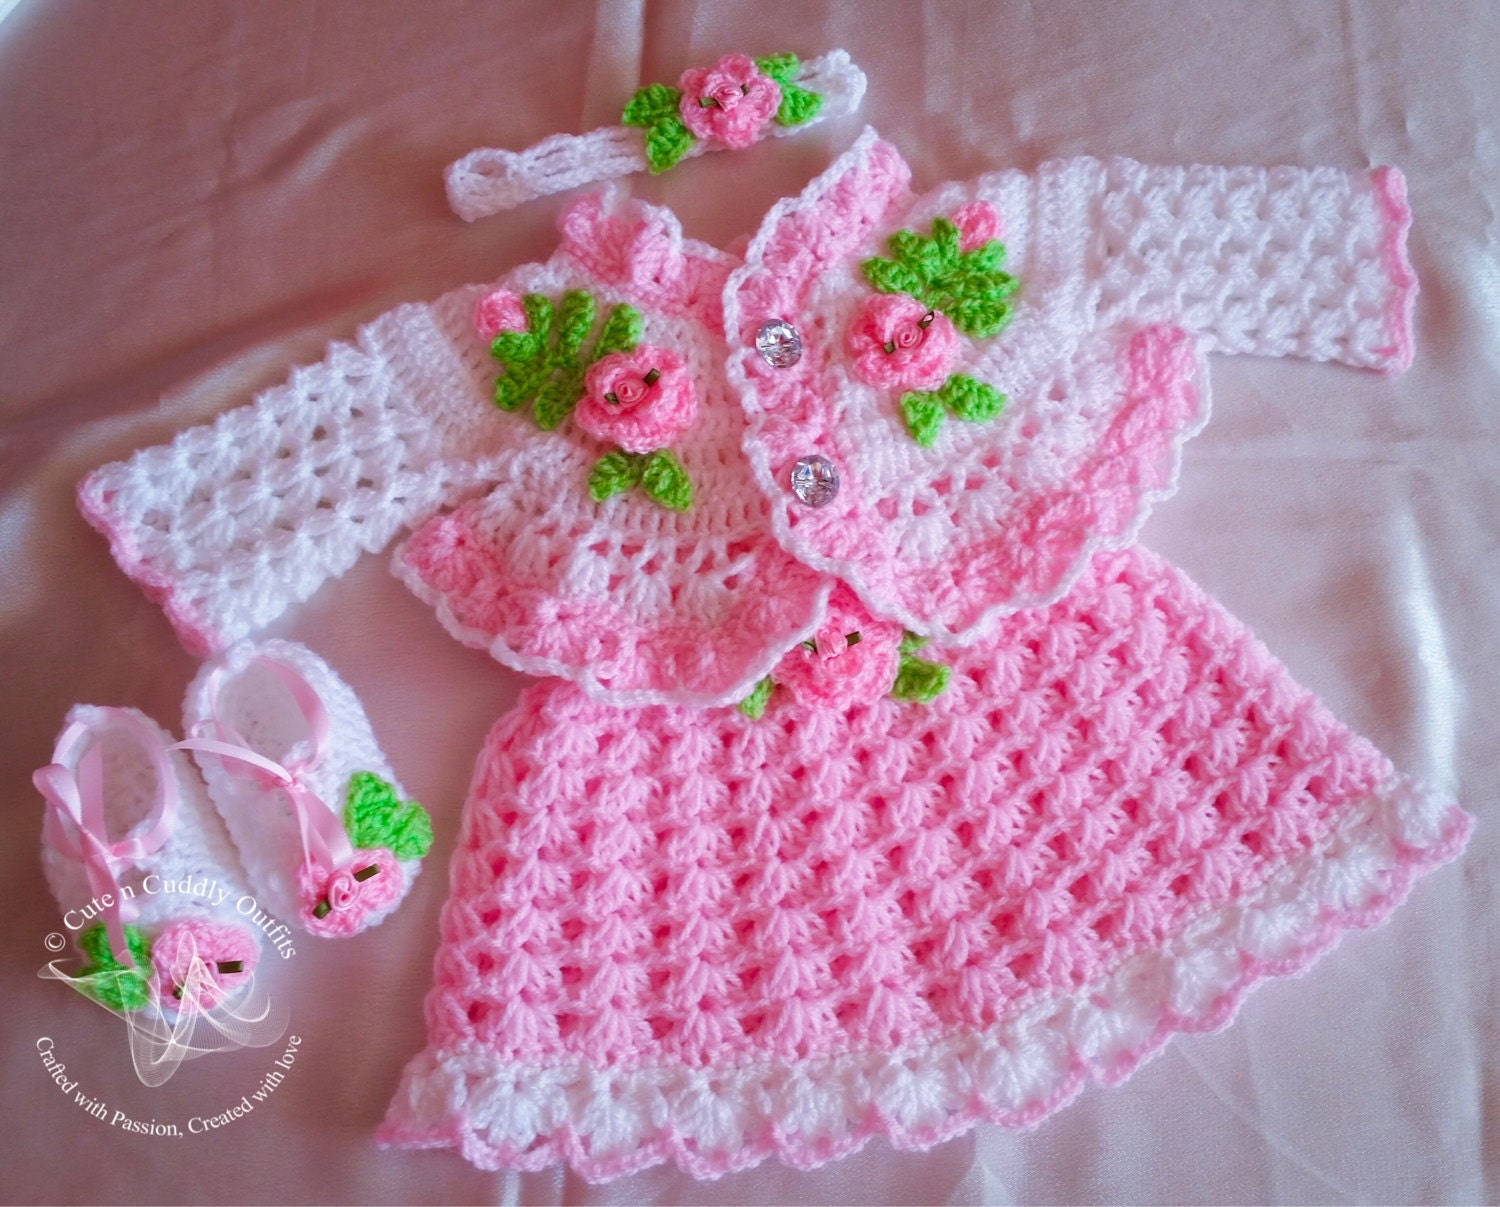 Crochet Baby Patterns, Crochet Baby Dress Pattern, Crochet Dress ...